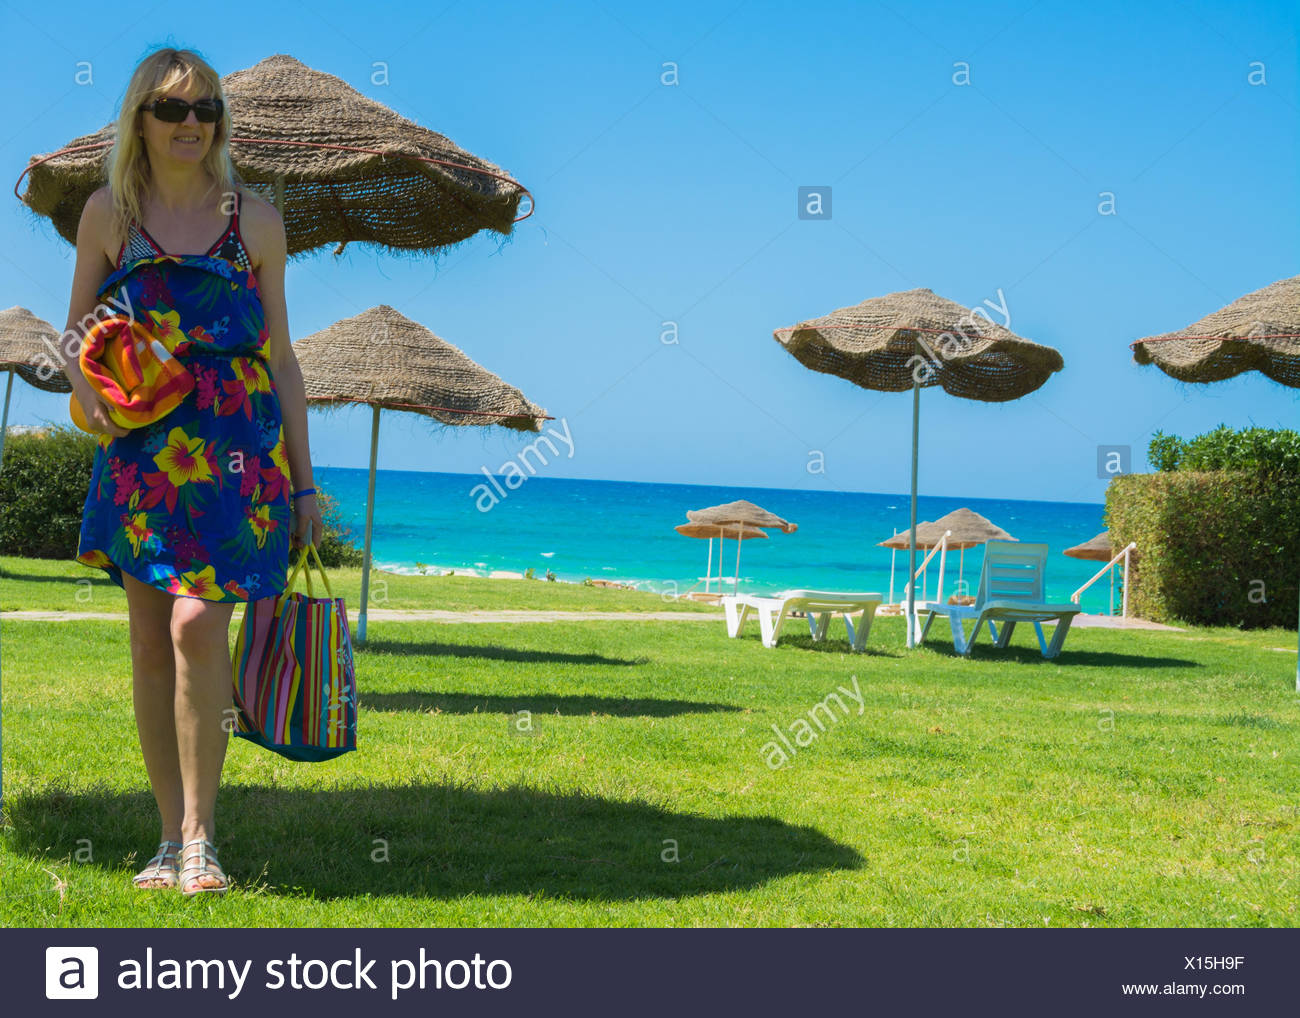 Holidaymaker at Tunisian beach - Stock Image